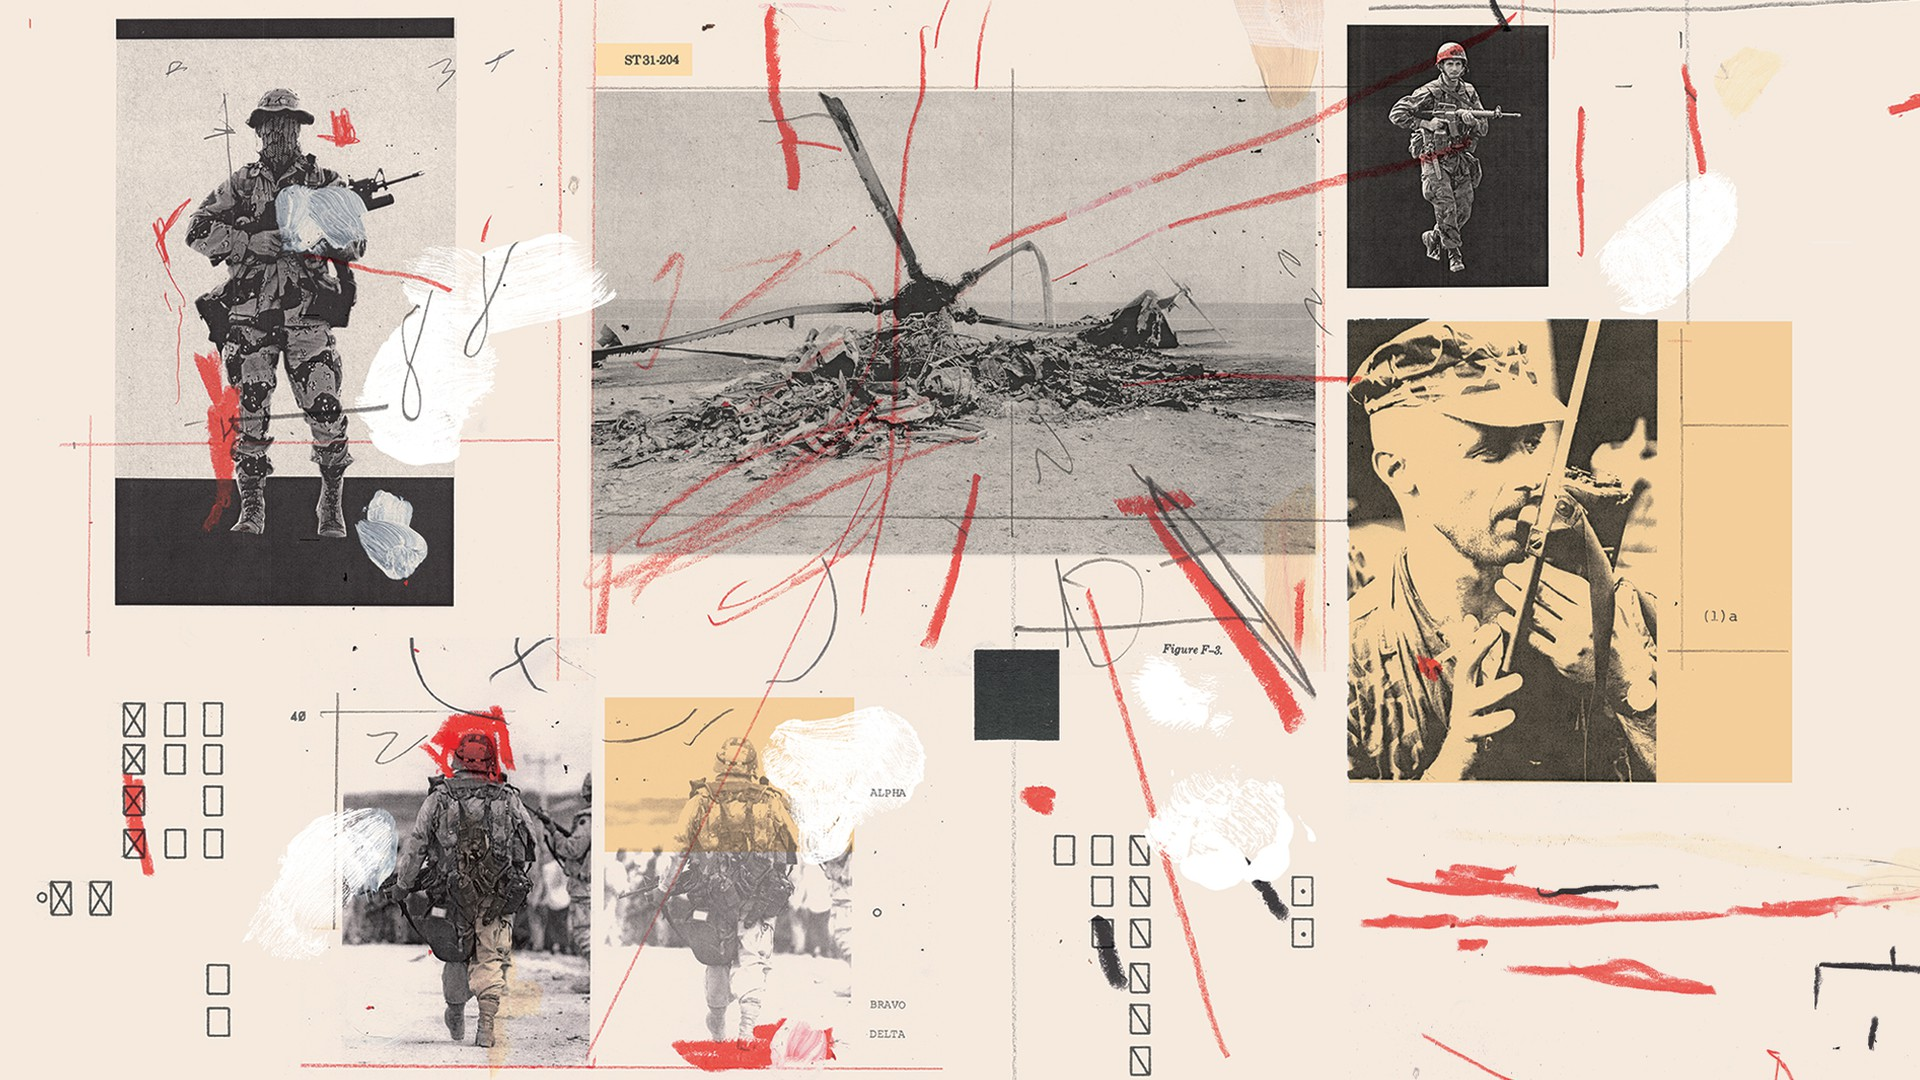 Illustration: collaged photos of soldiers and helicopter wreckage